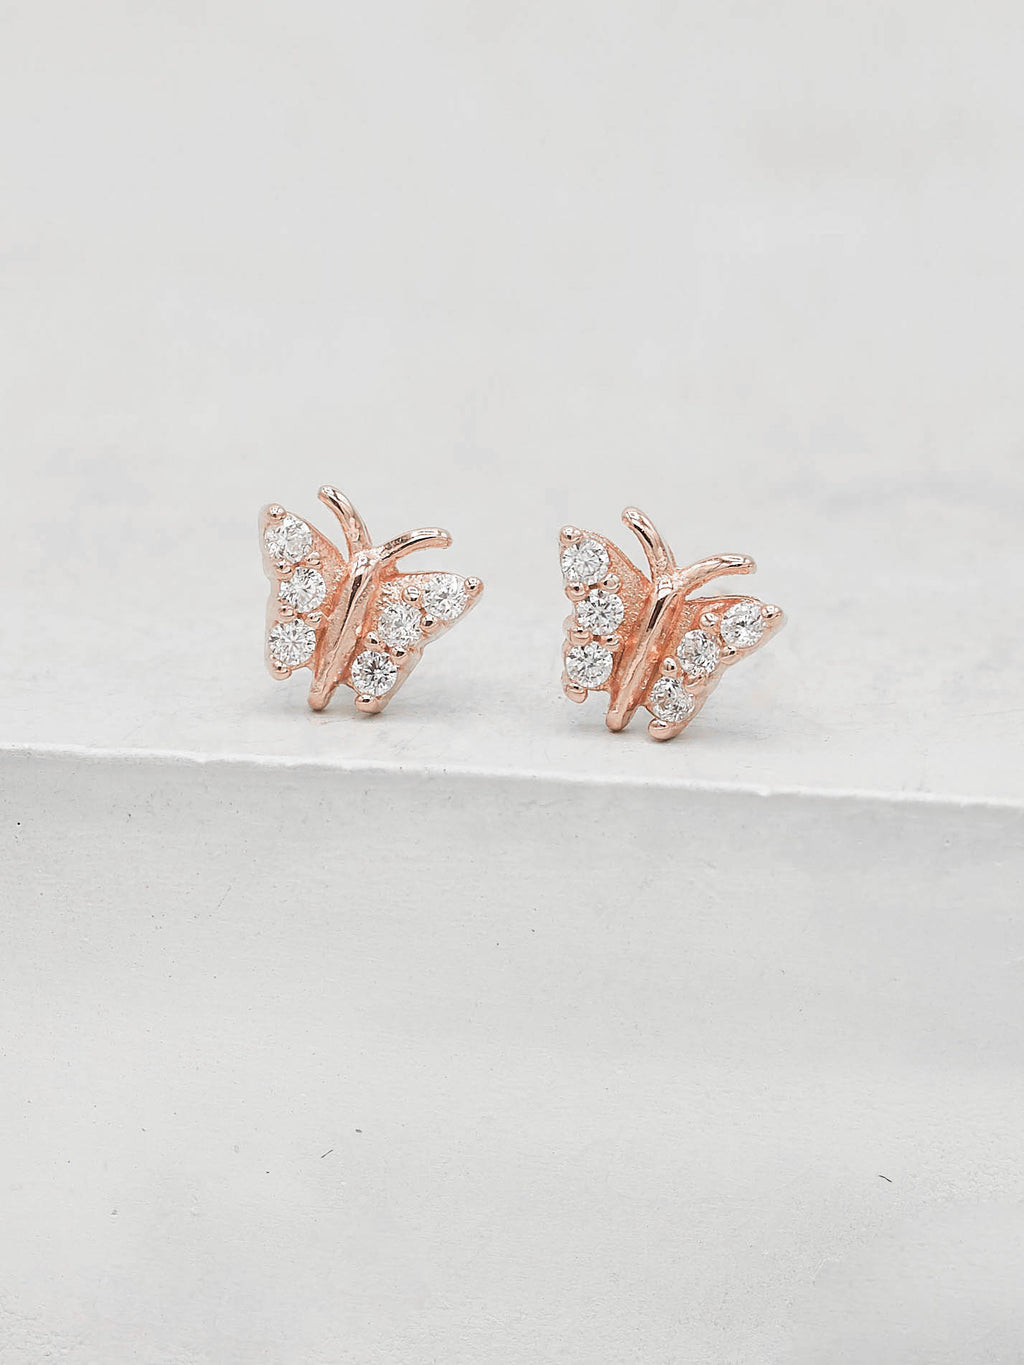 Rose Gold Plated Tiny butterfly with white CZ cubic Zirconia Dainty Stud Earrings by The Faint Hearted jewelry